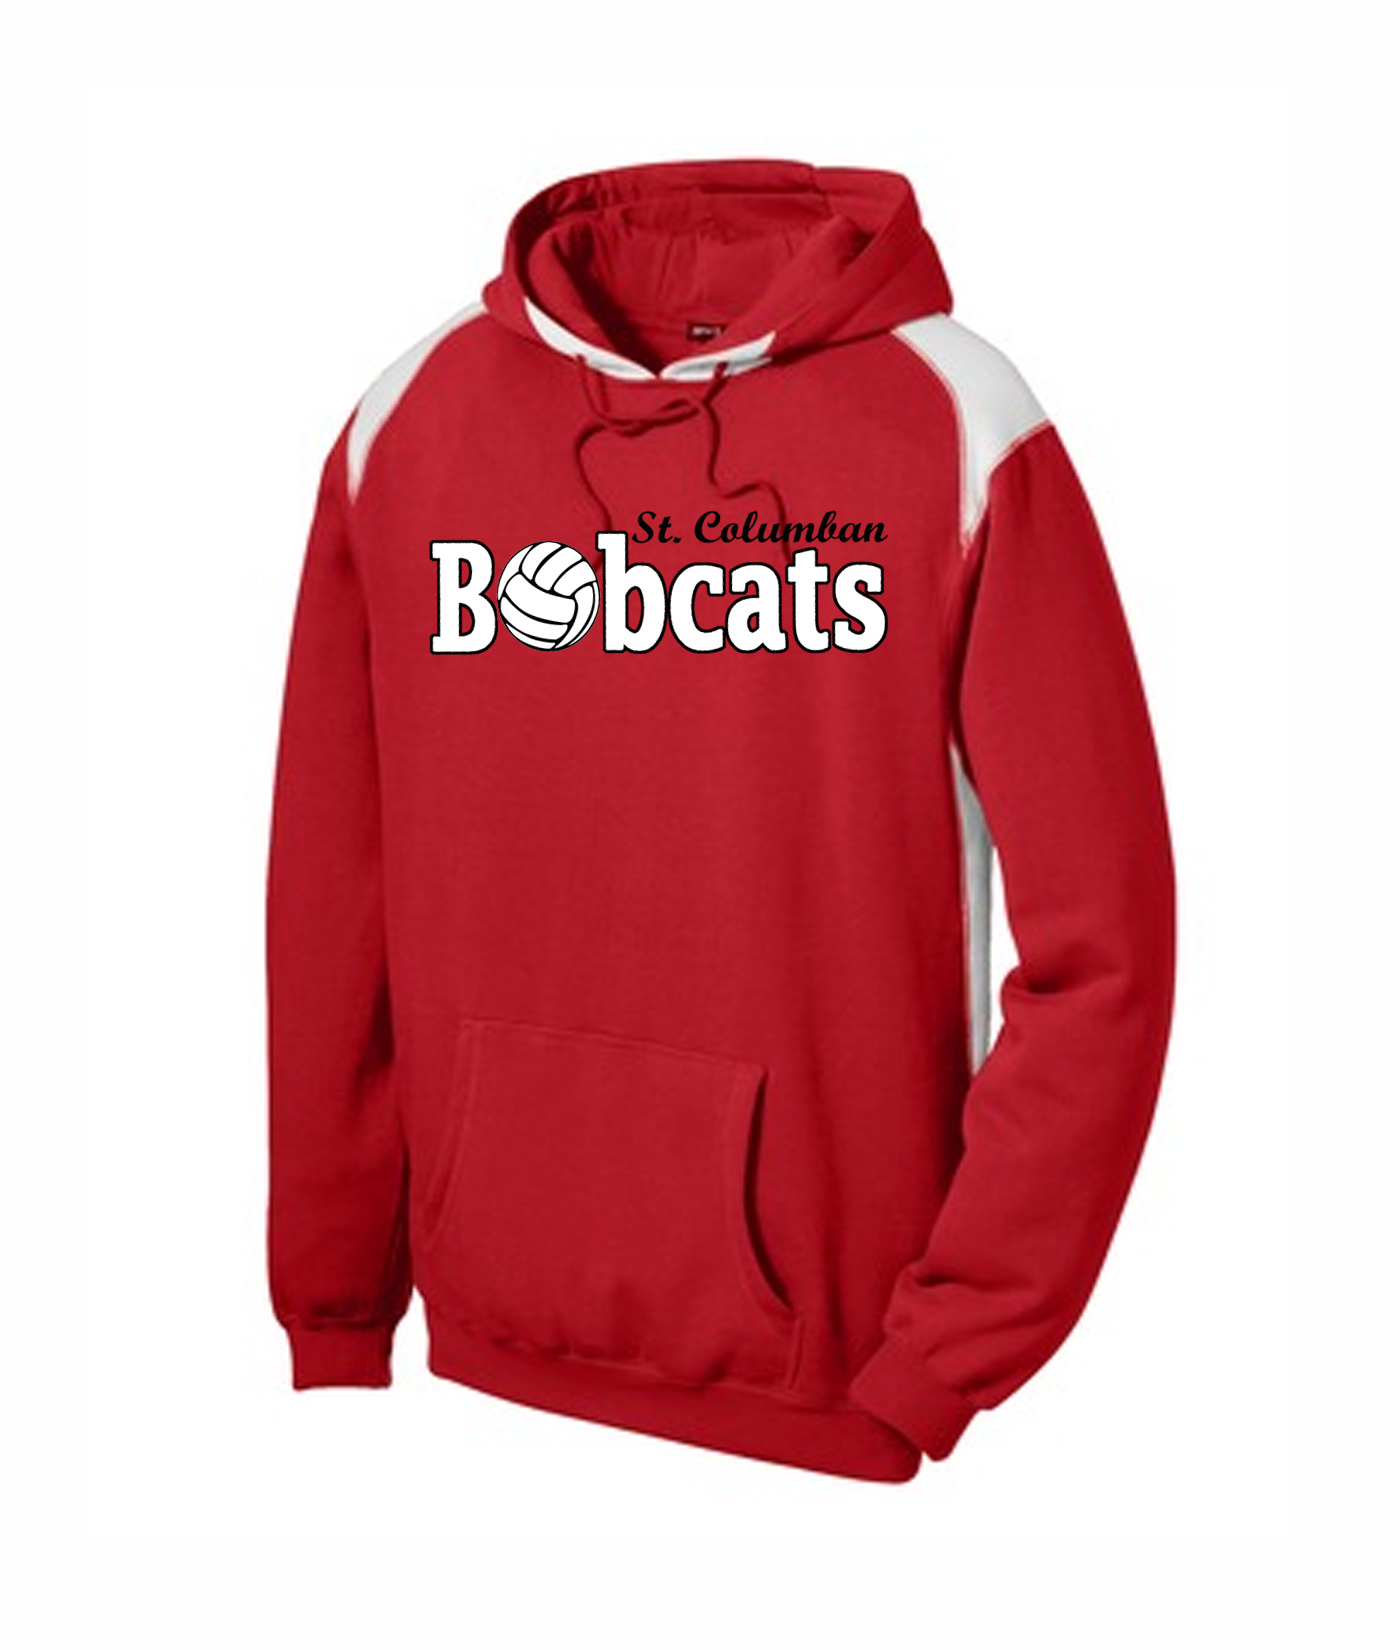 St. Columban Bobcats Volleyball Red Multi Color Hoodie